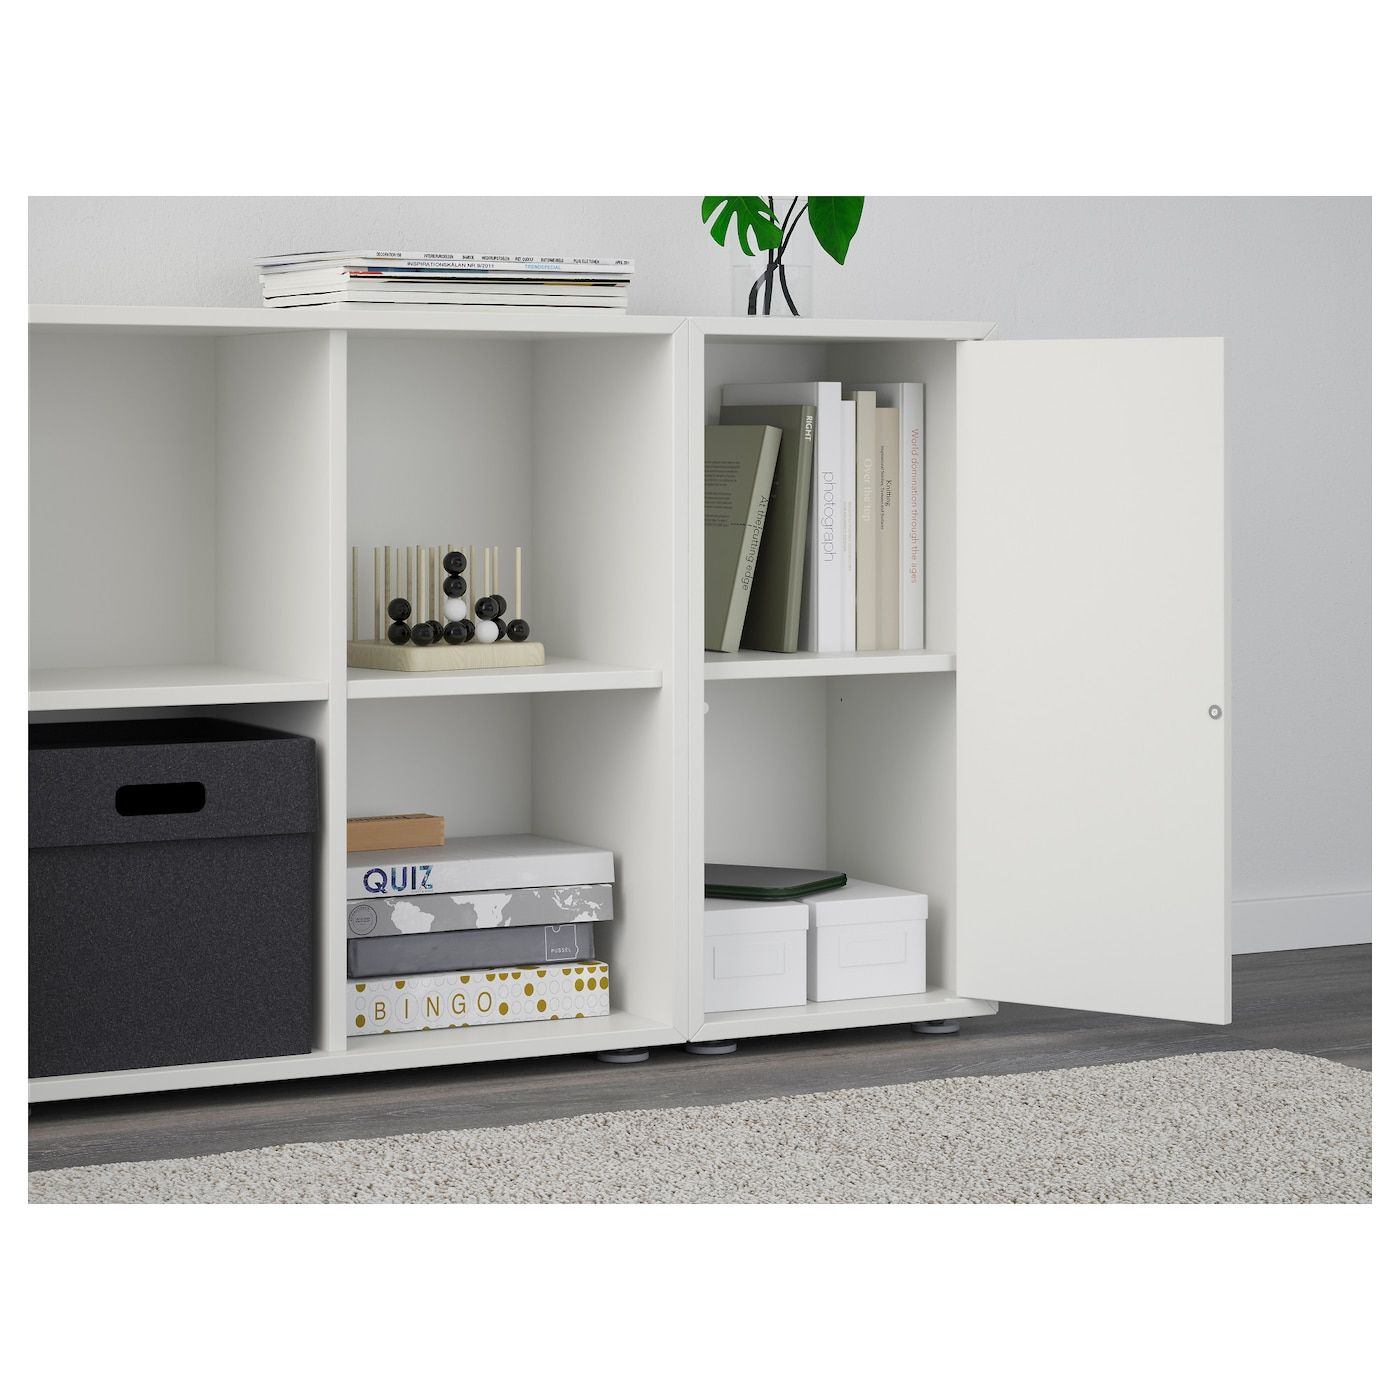 EKET Storage combination with feet, white. Shop IKEA.ca - IKEA